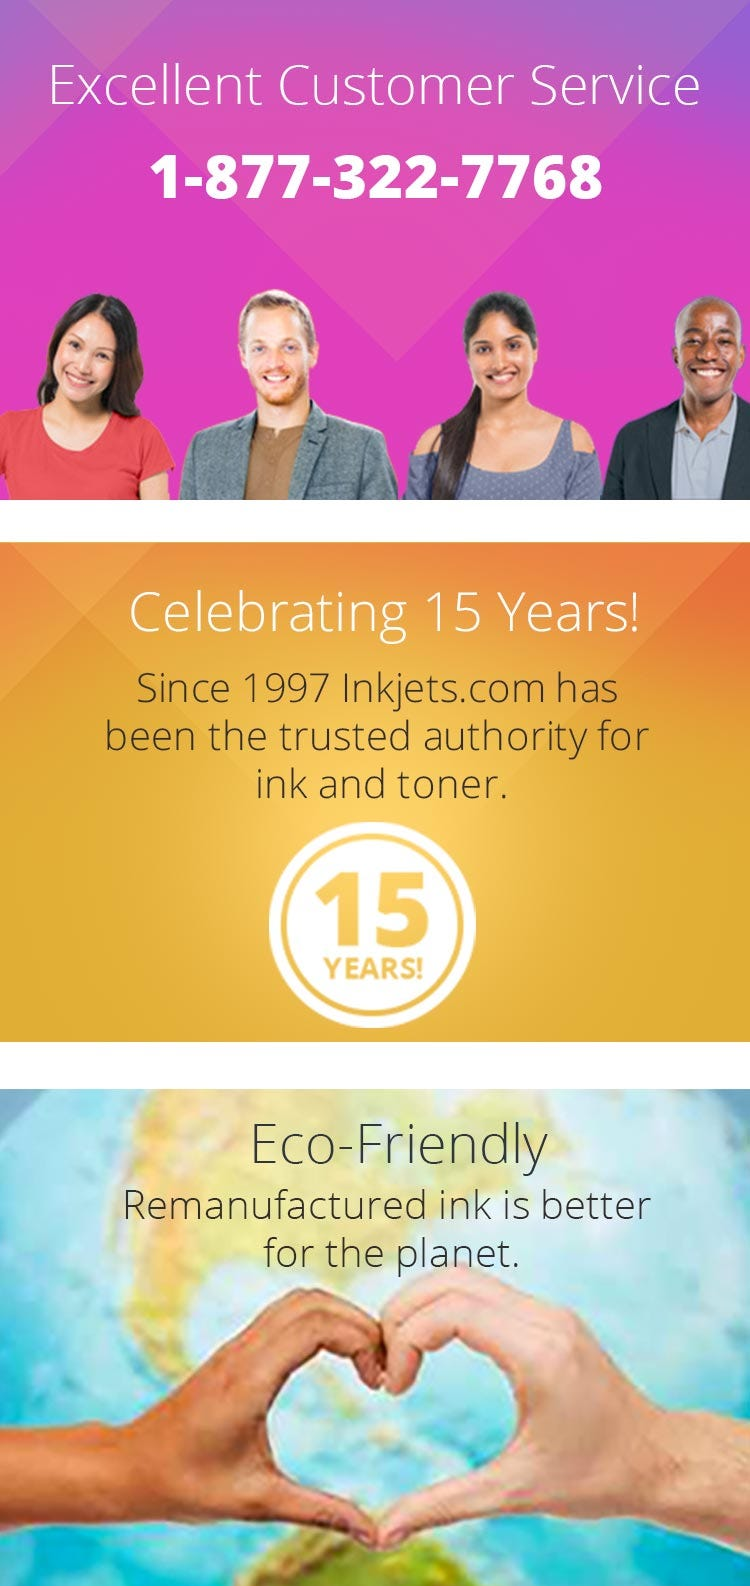 Excellent Customer Service. Celebrating 15 Years! Eco Friendly.